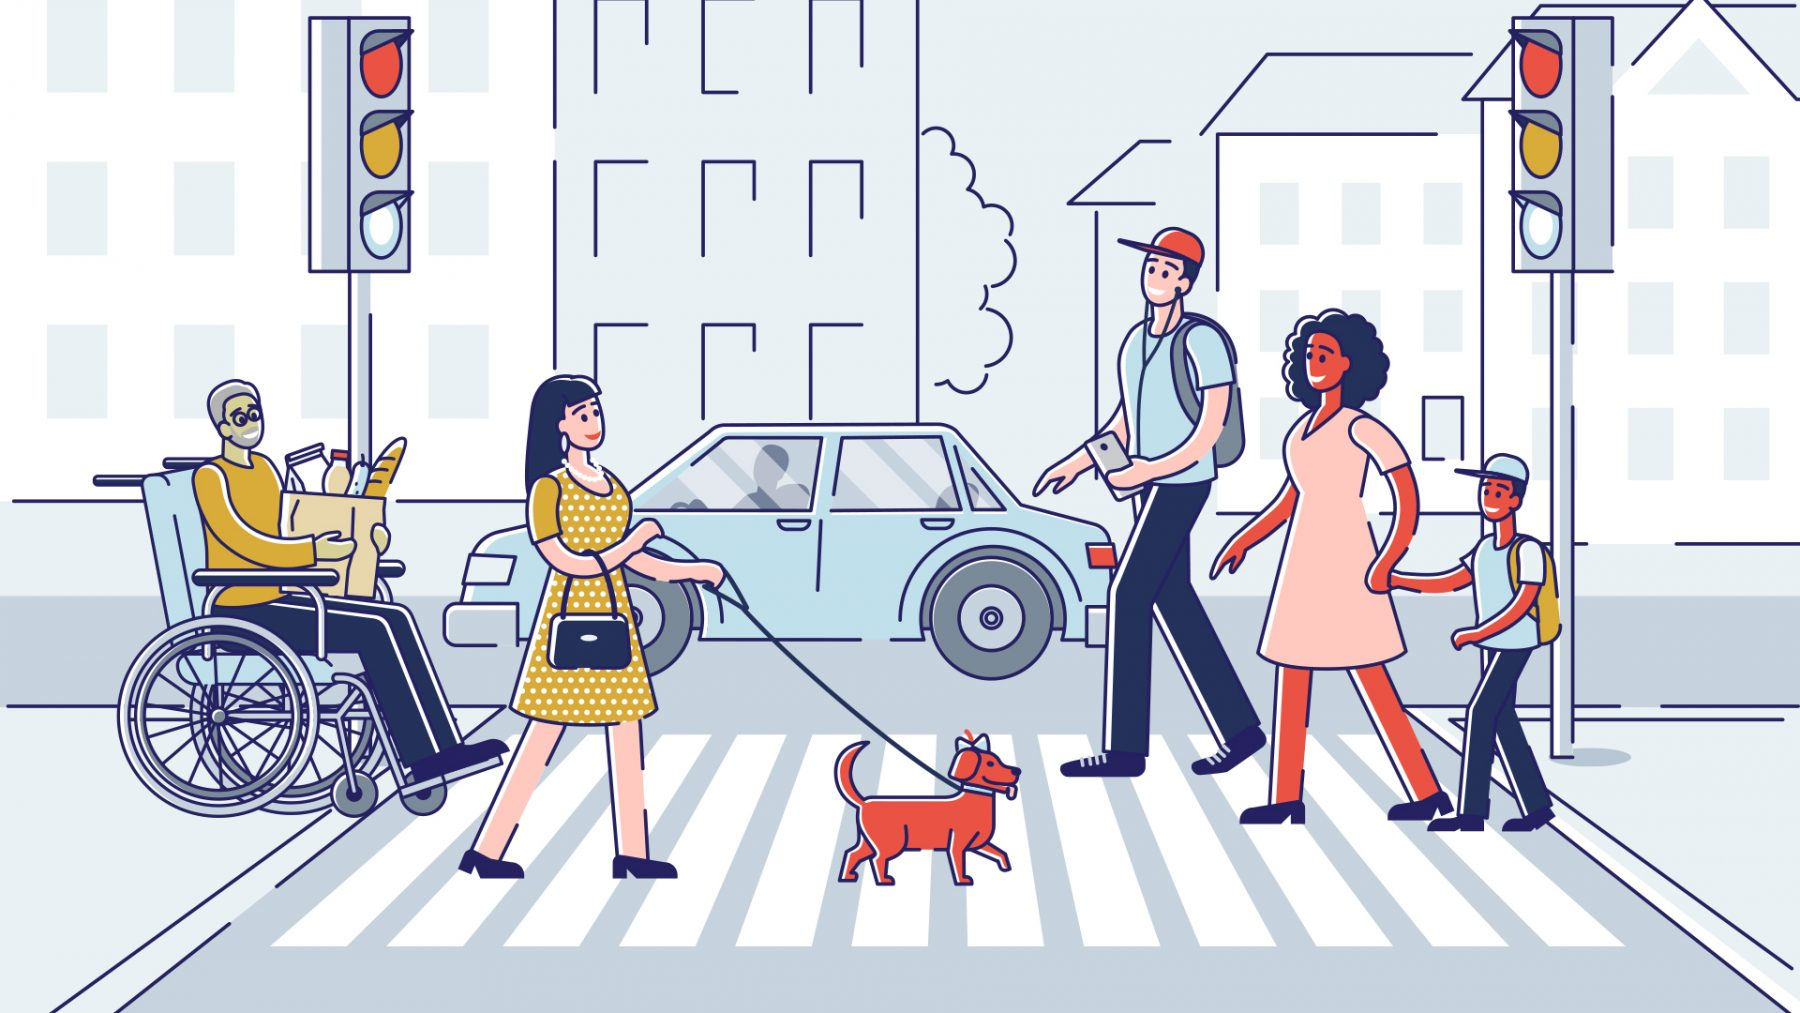 people crossing a street graphic